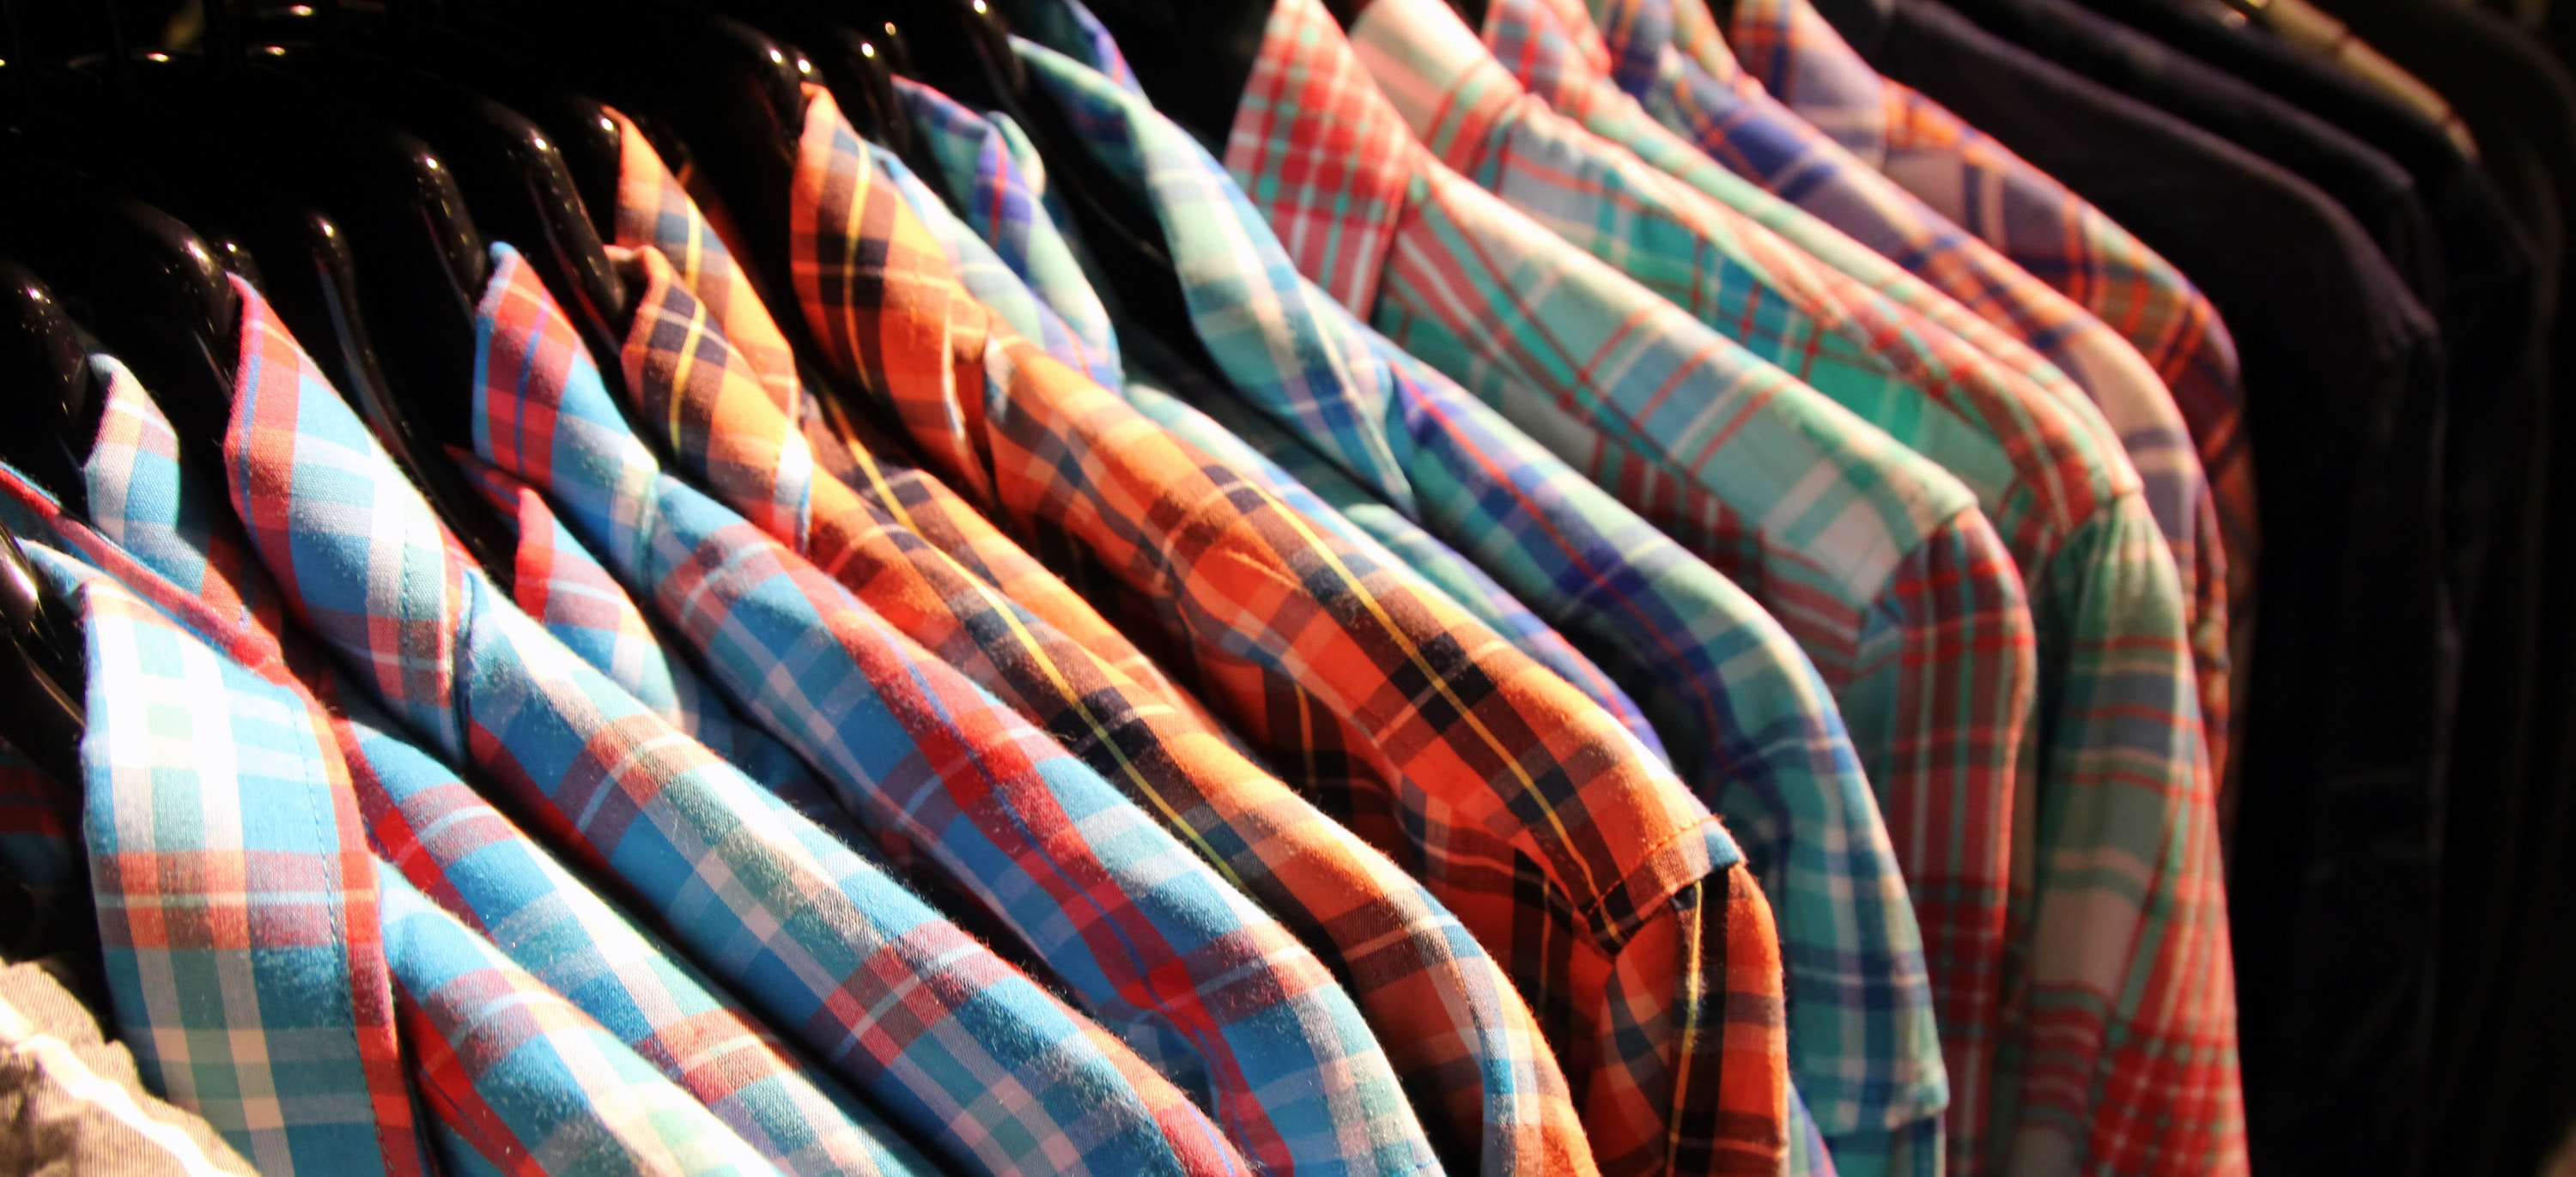 plaid shirts hung on a rack